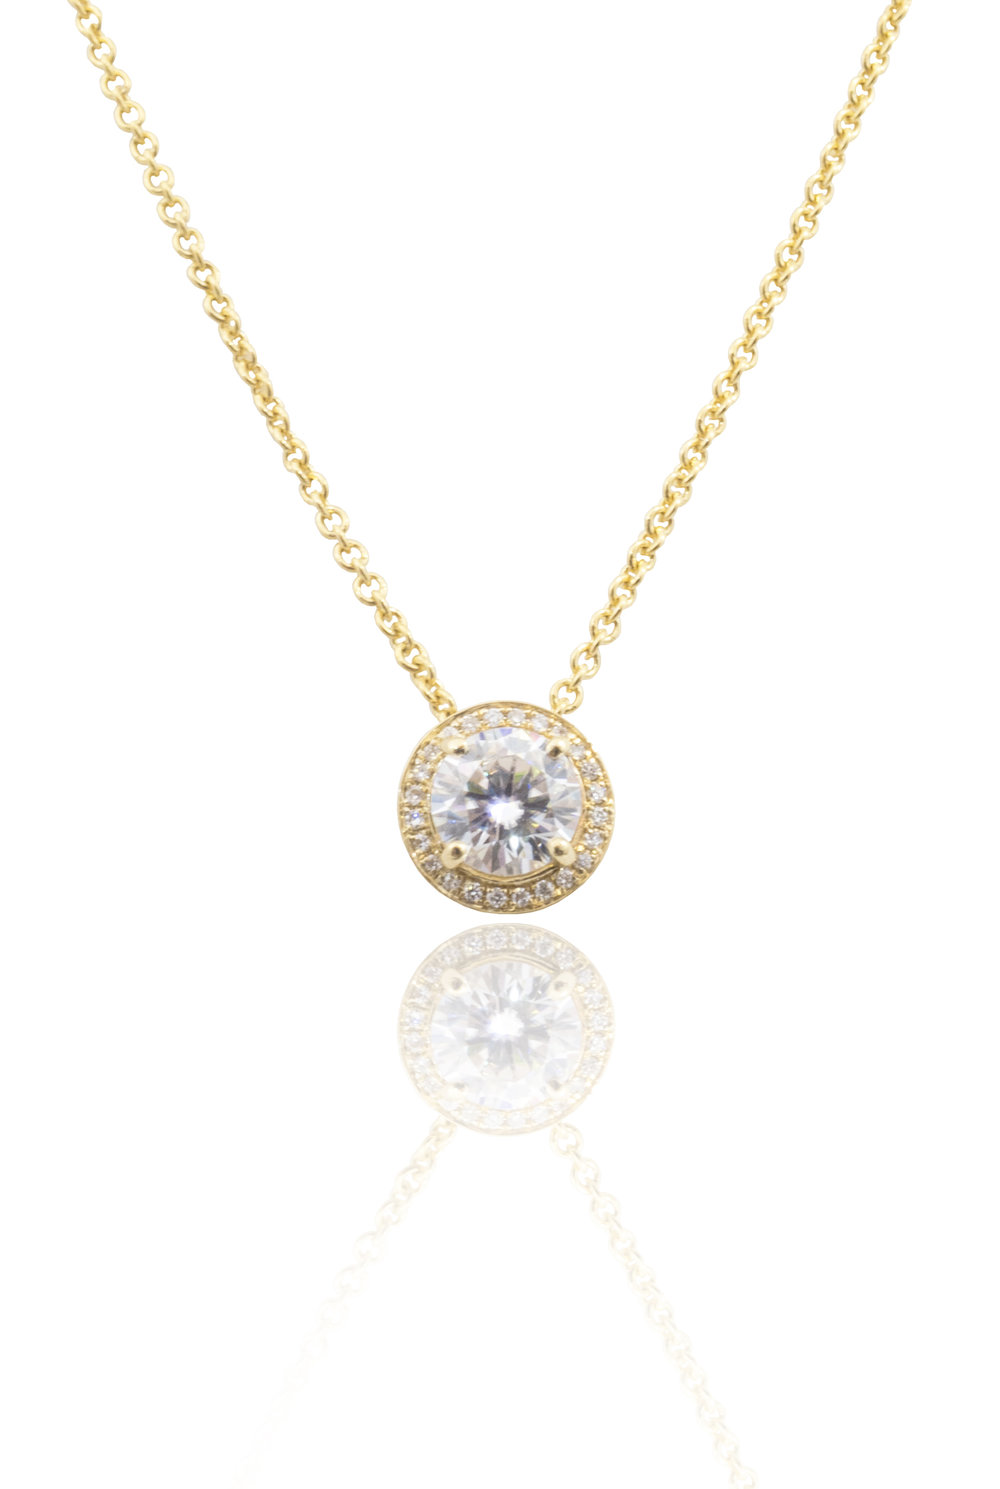 Moissanite gold necklace!